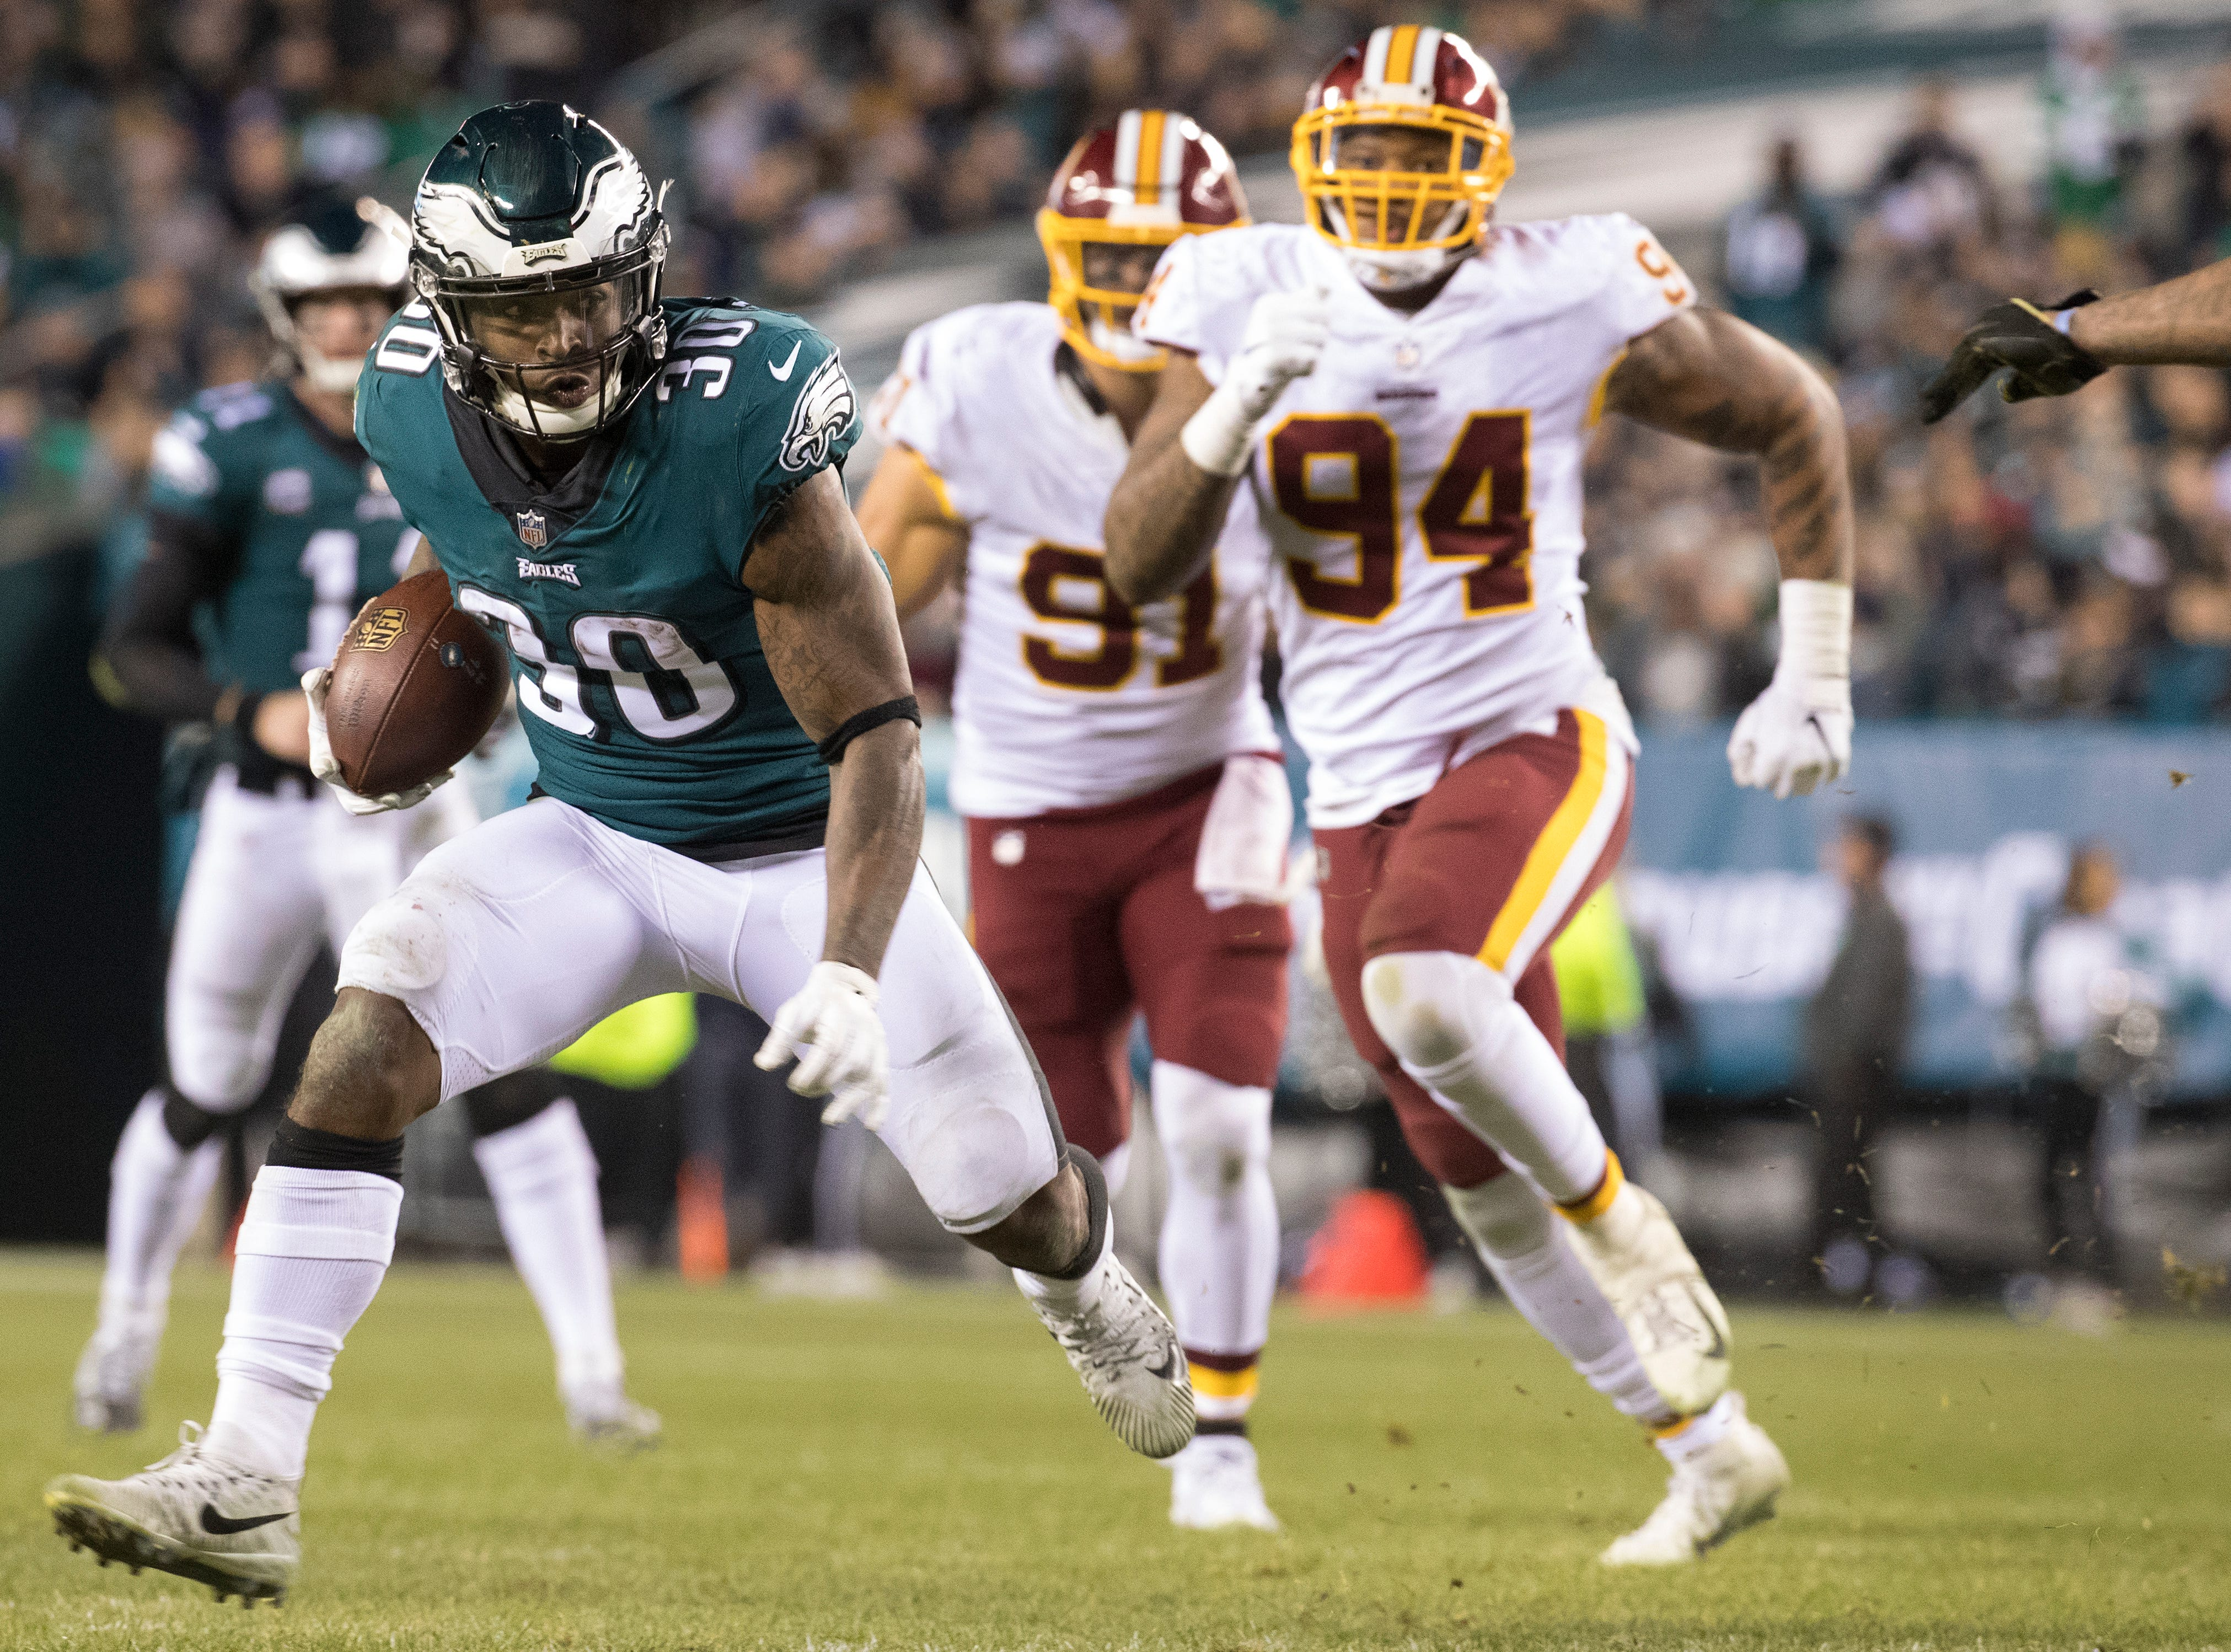 Eagles' Corey Graham (30) rushes downfield Monday night against the Redskins.